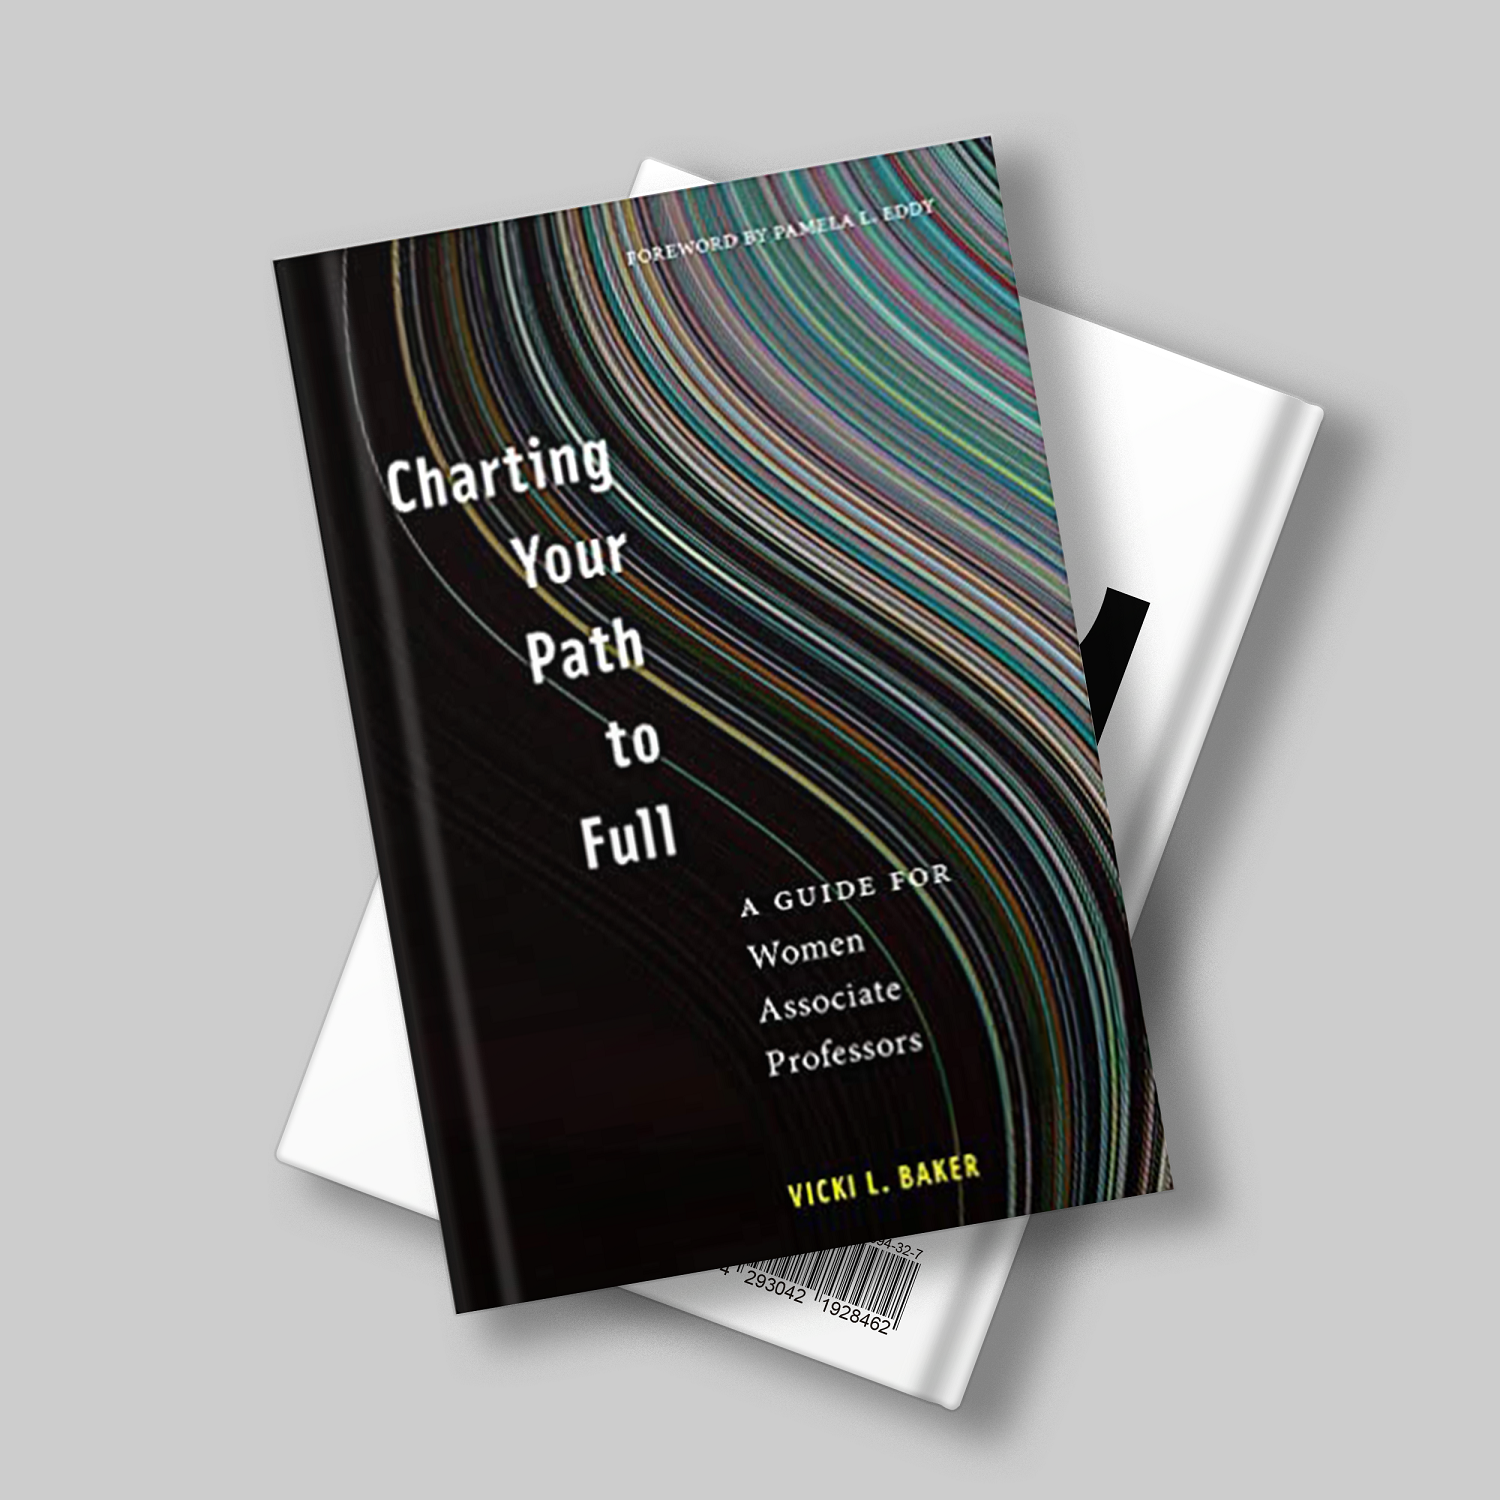 CHARTING YOUR PATH TO FULL: A GUIDE FOR WOMEN ASSOCIATE PROFESSORS